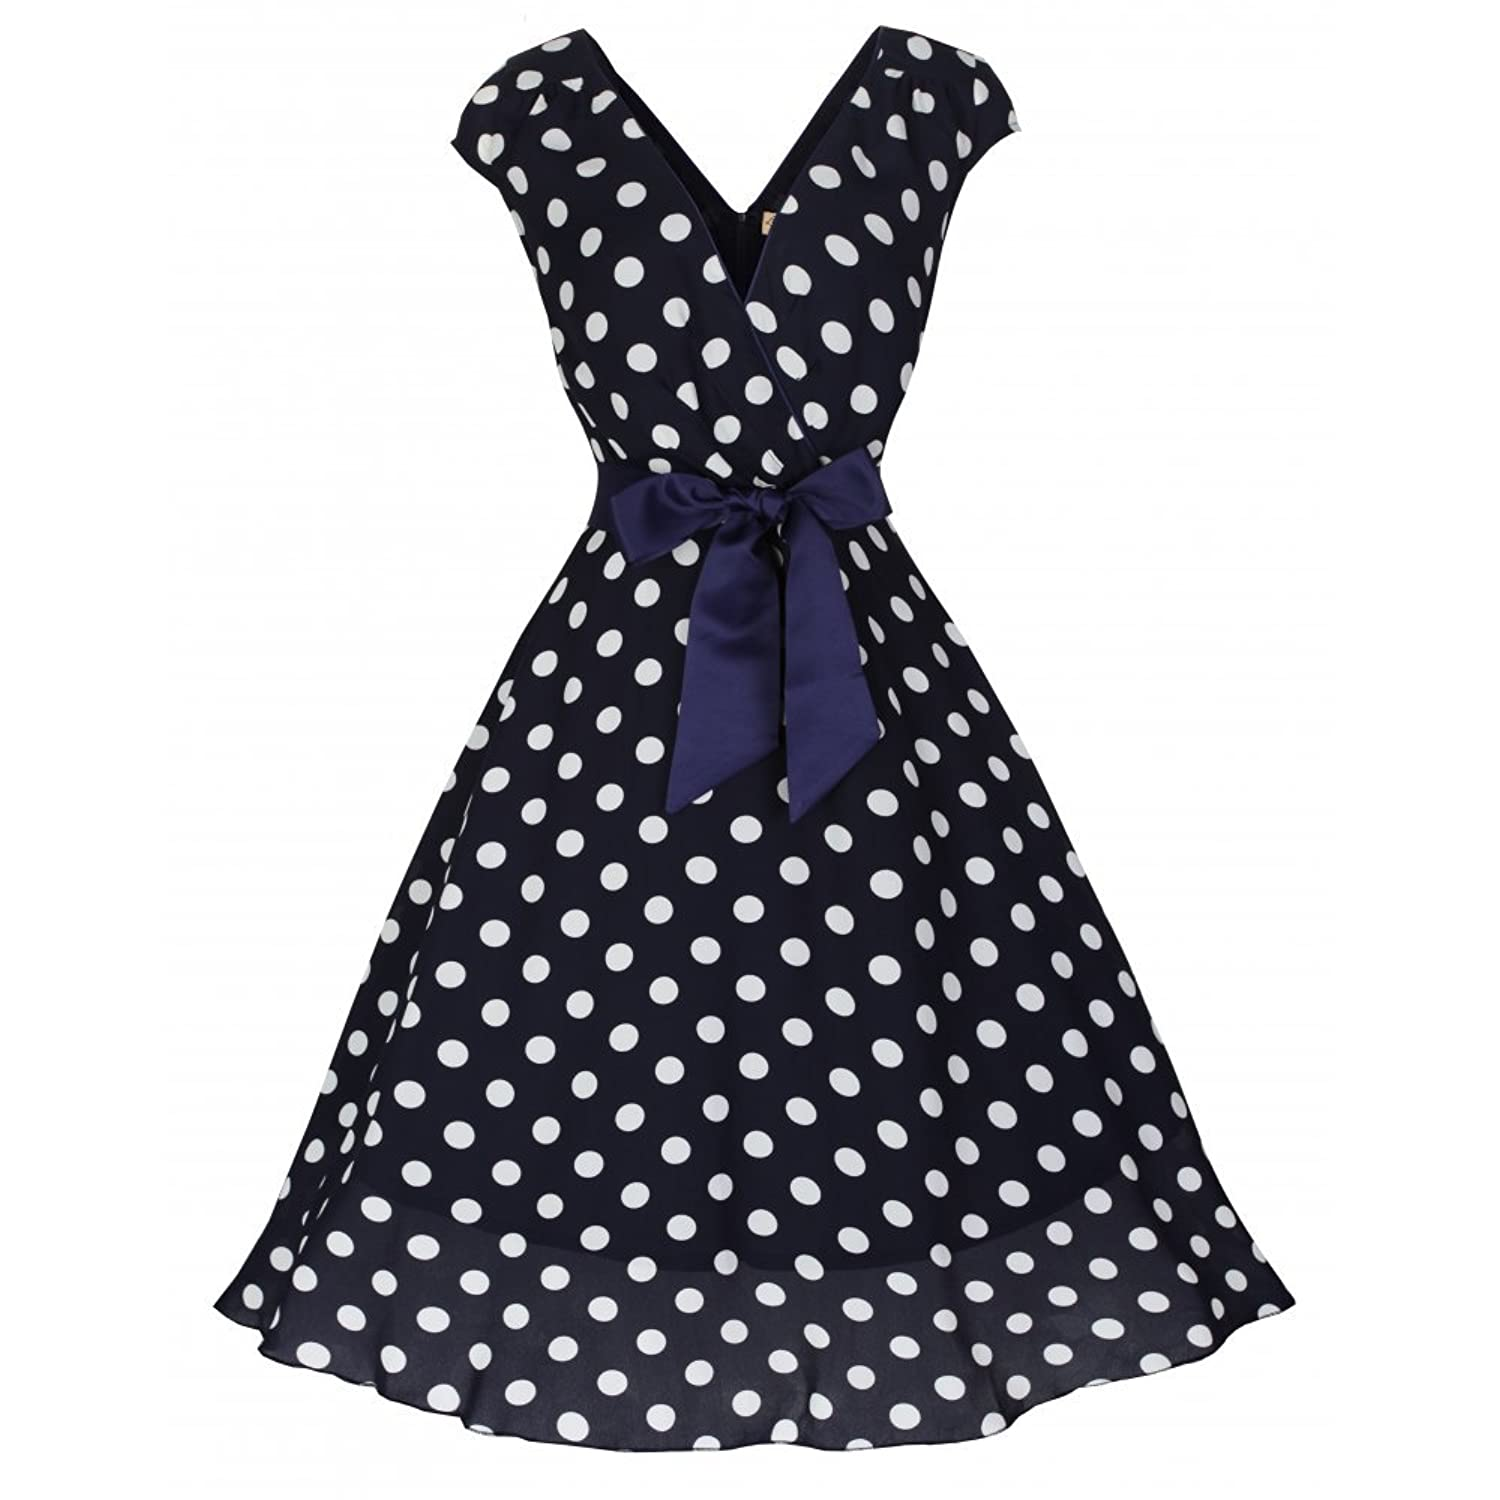 1950s Polka Dot Dresses Lindy Bop Mary Ellen Navy Polka Dot Swing Dress £19.60 AT vintagedancer.com